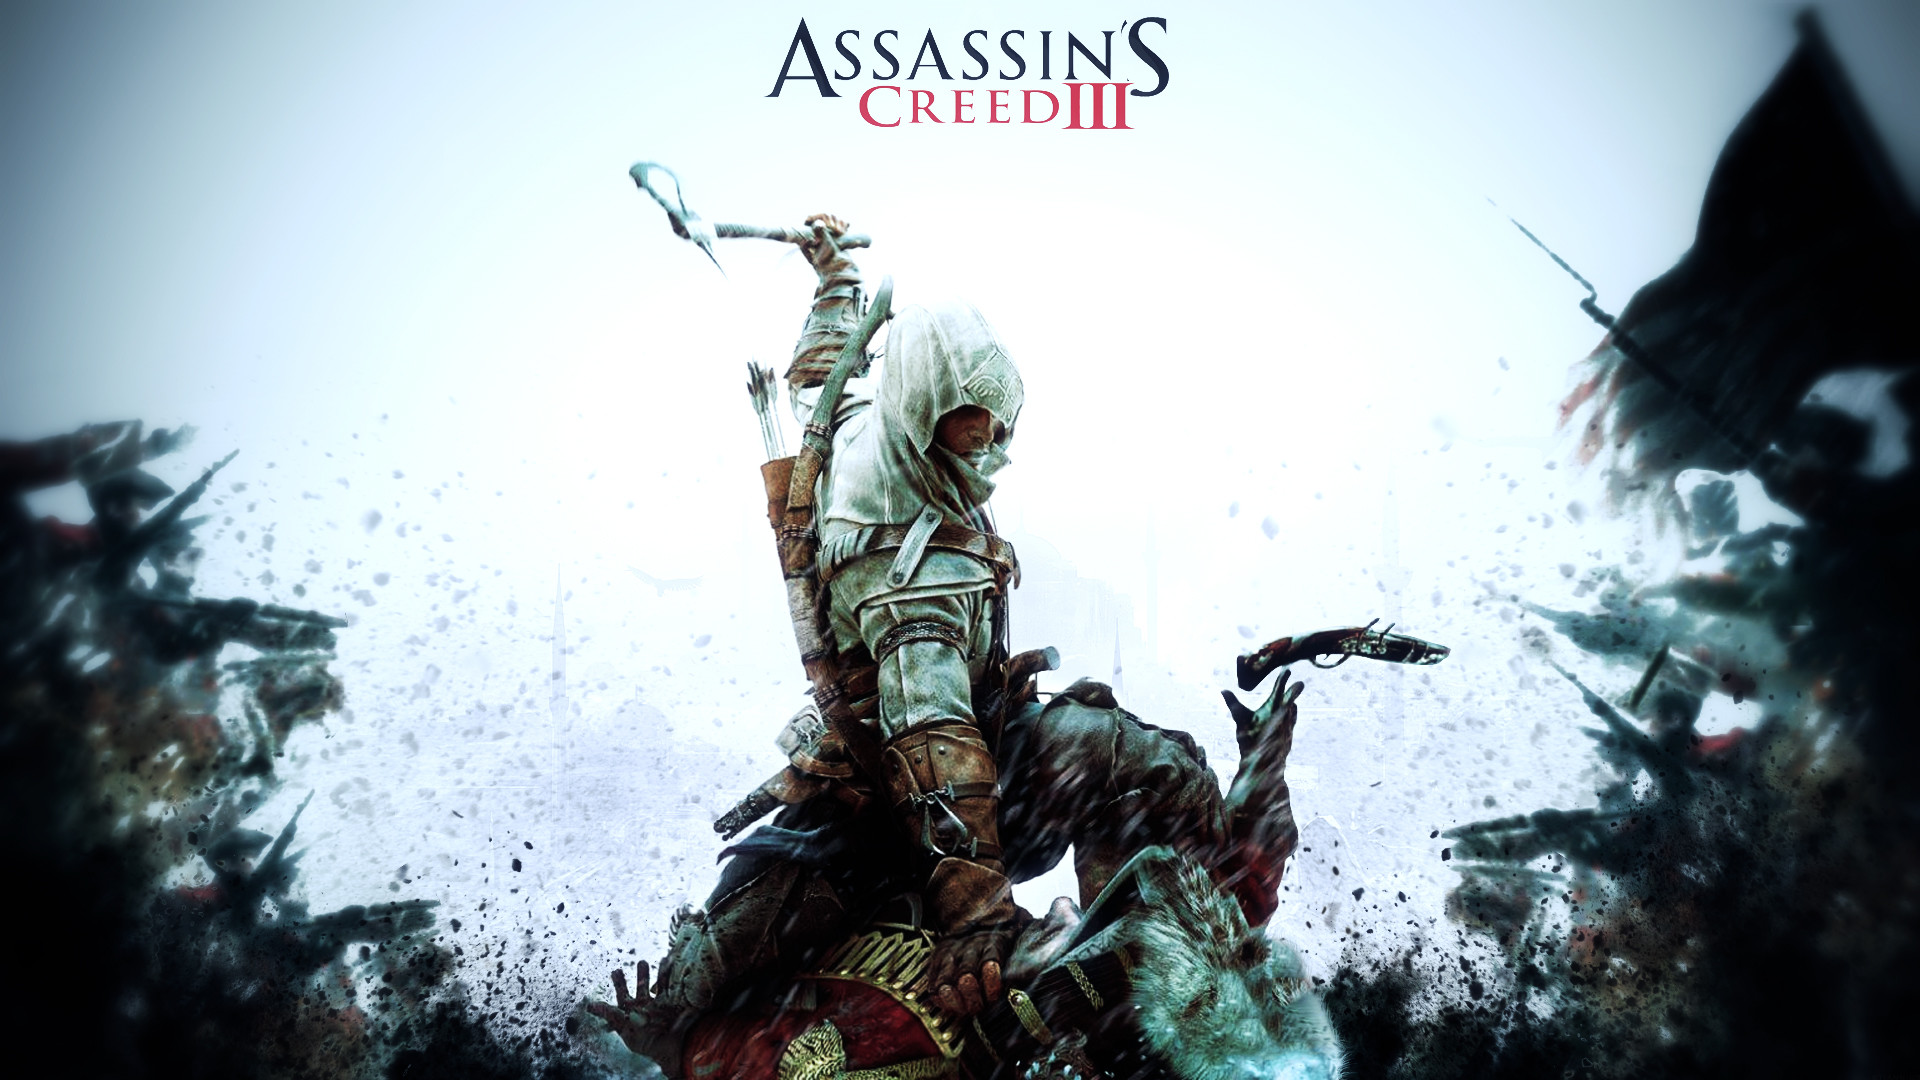 Assassins Creed 3 Wallpaper Hd Wallpapertag